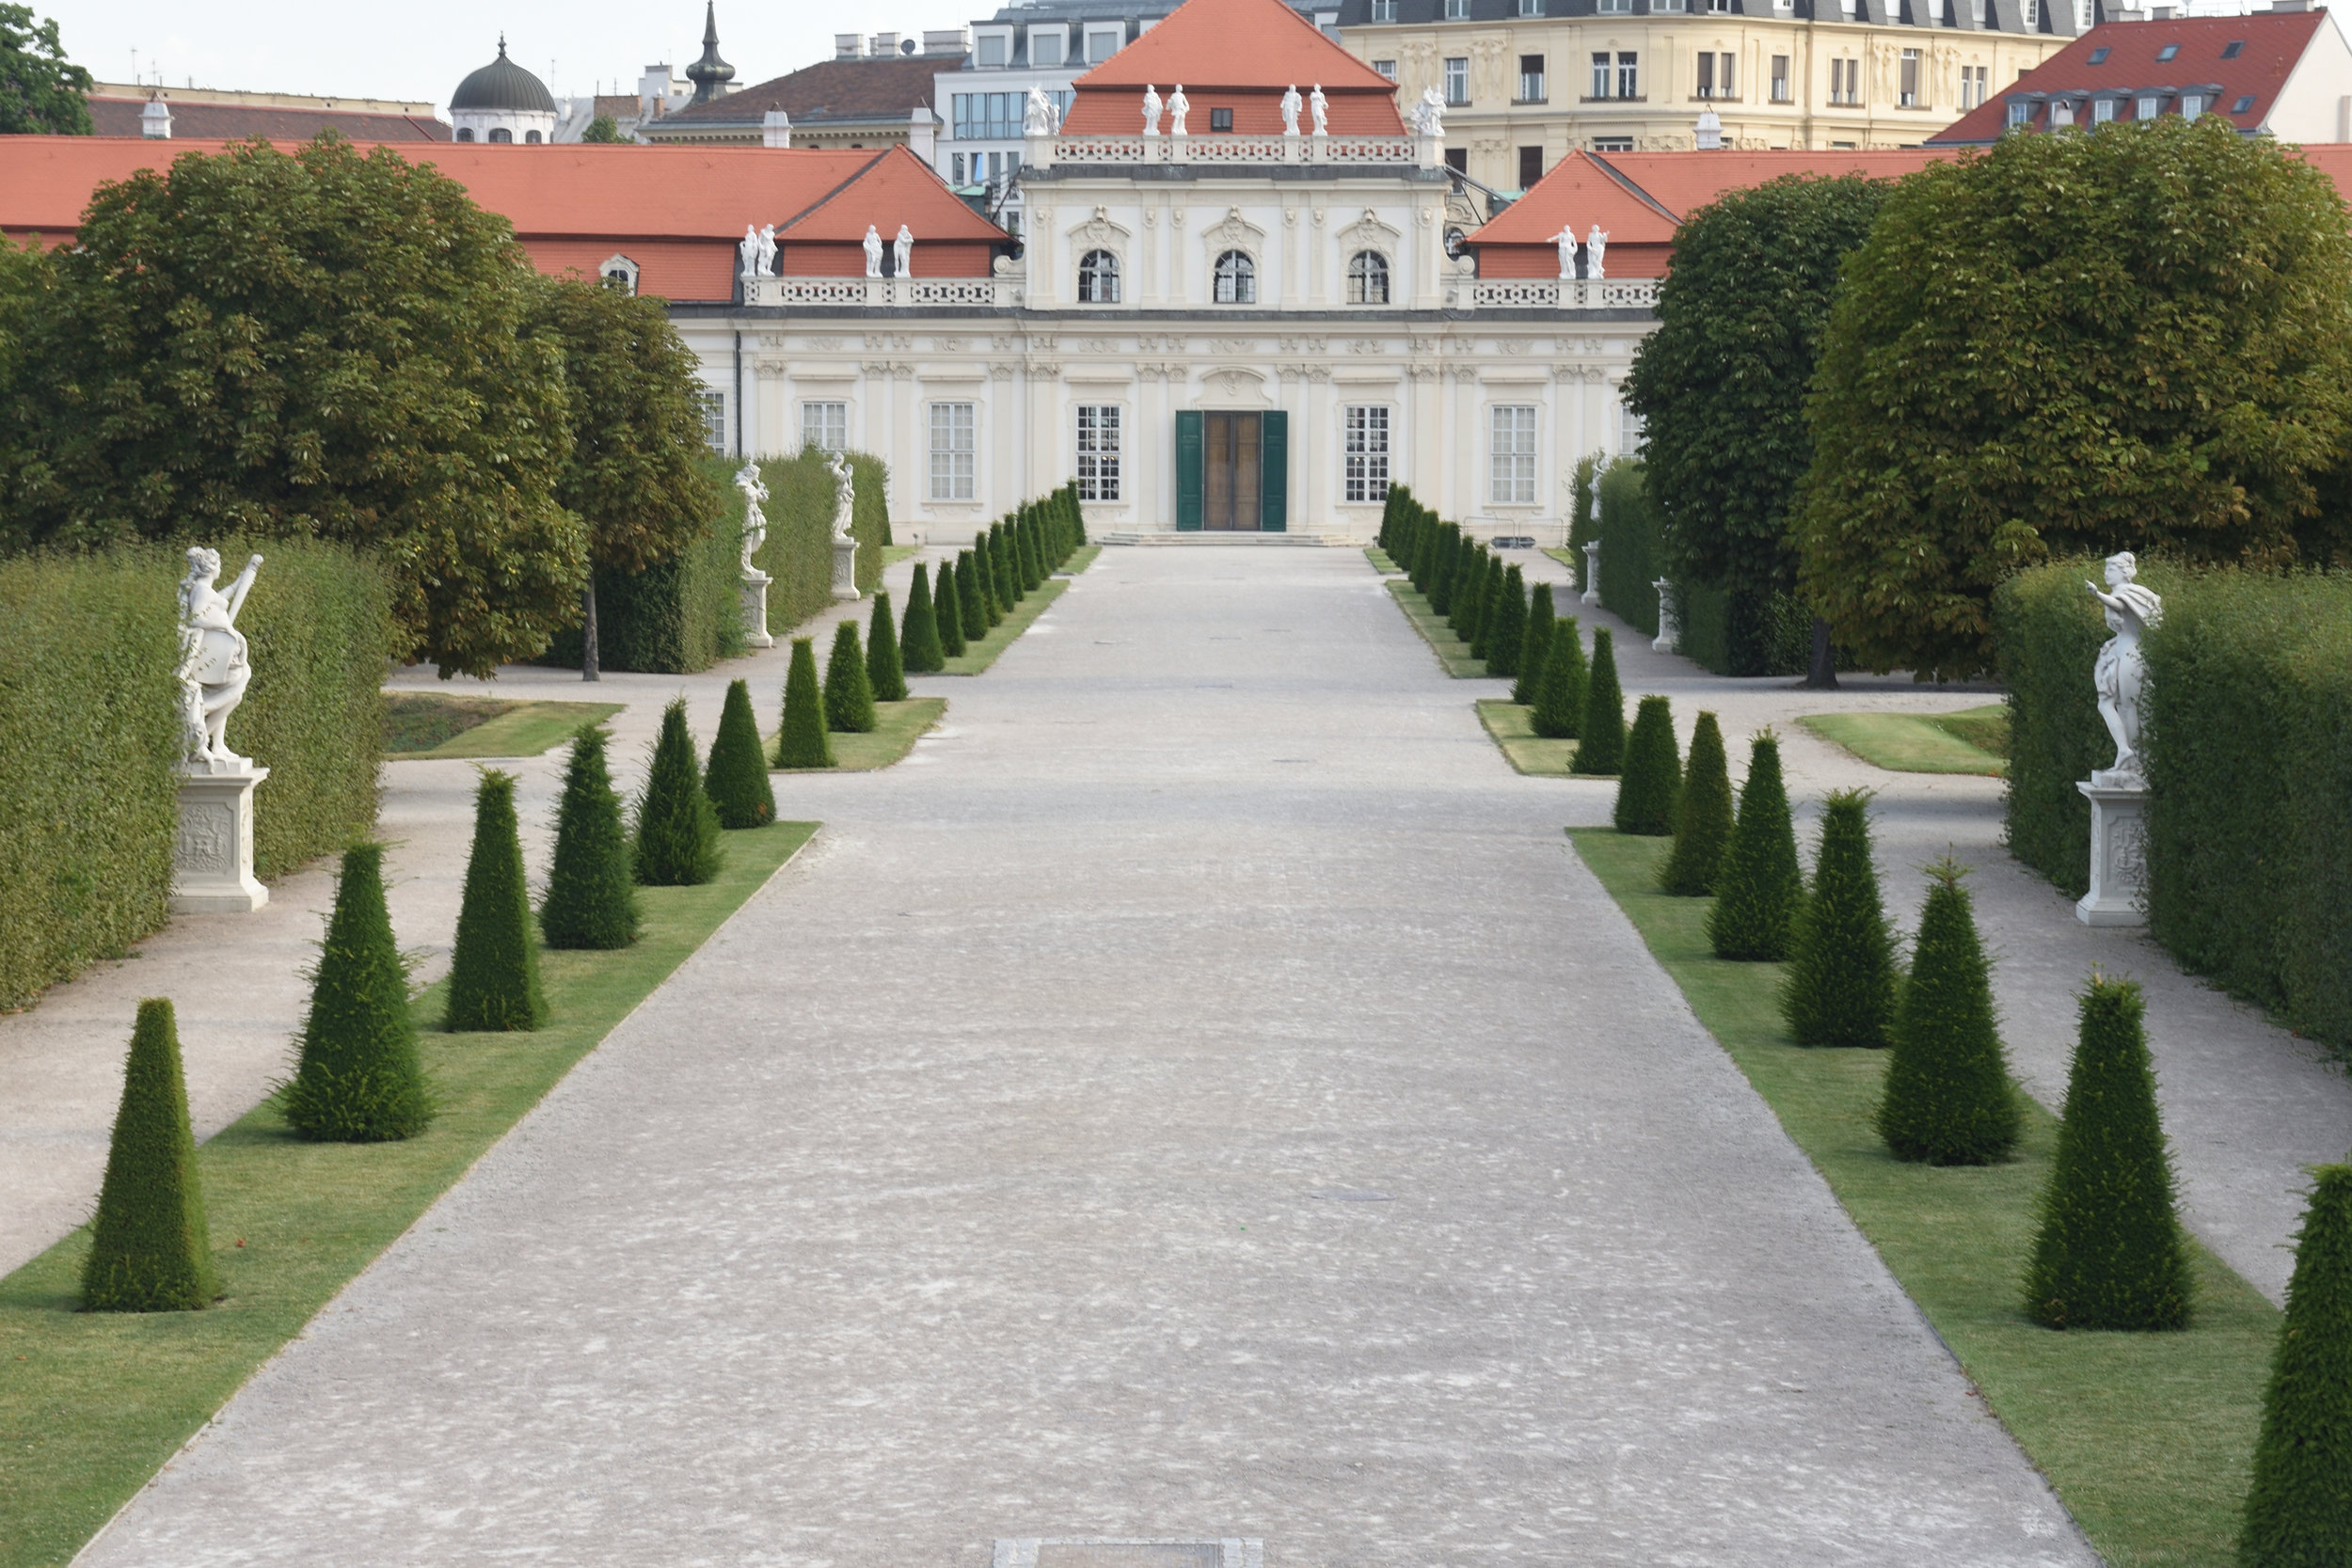 Belvedere, Vienna July 2017